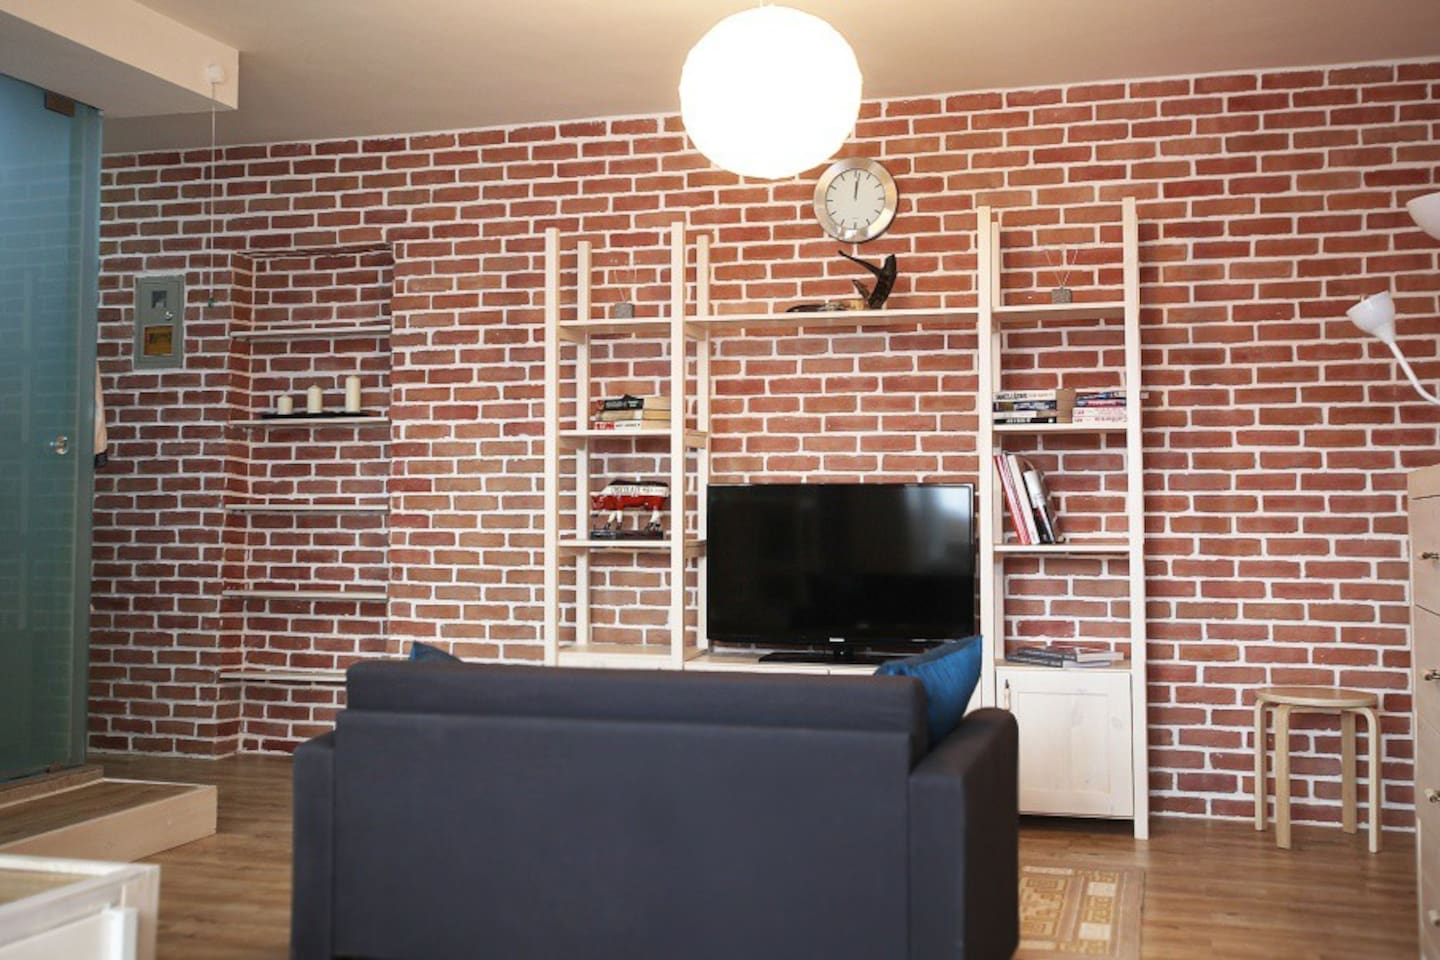 A nice little living room with a cozy couch, the TV and some storage unites.